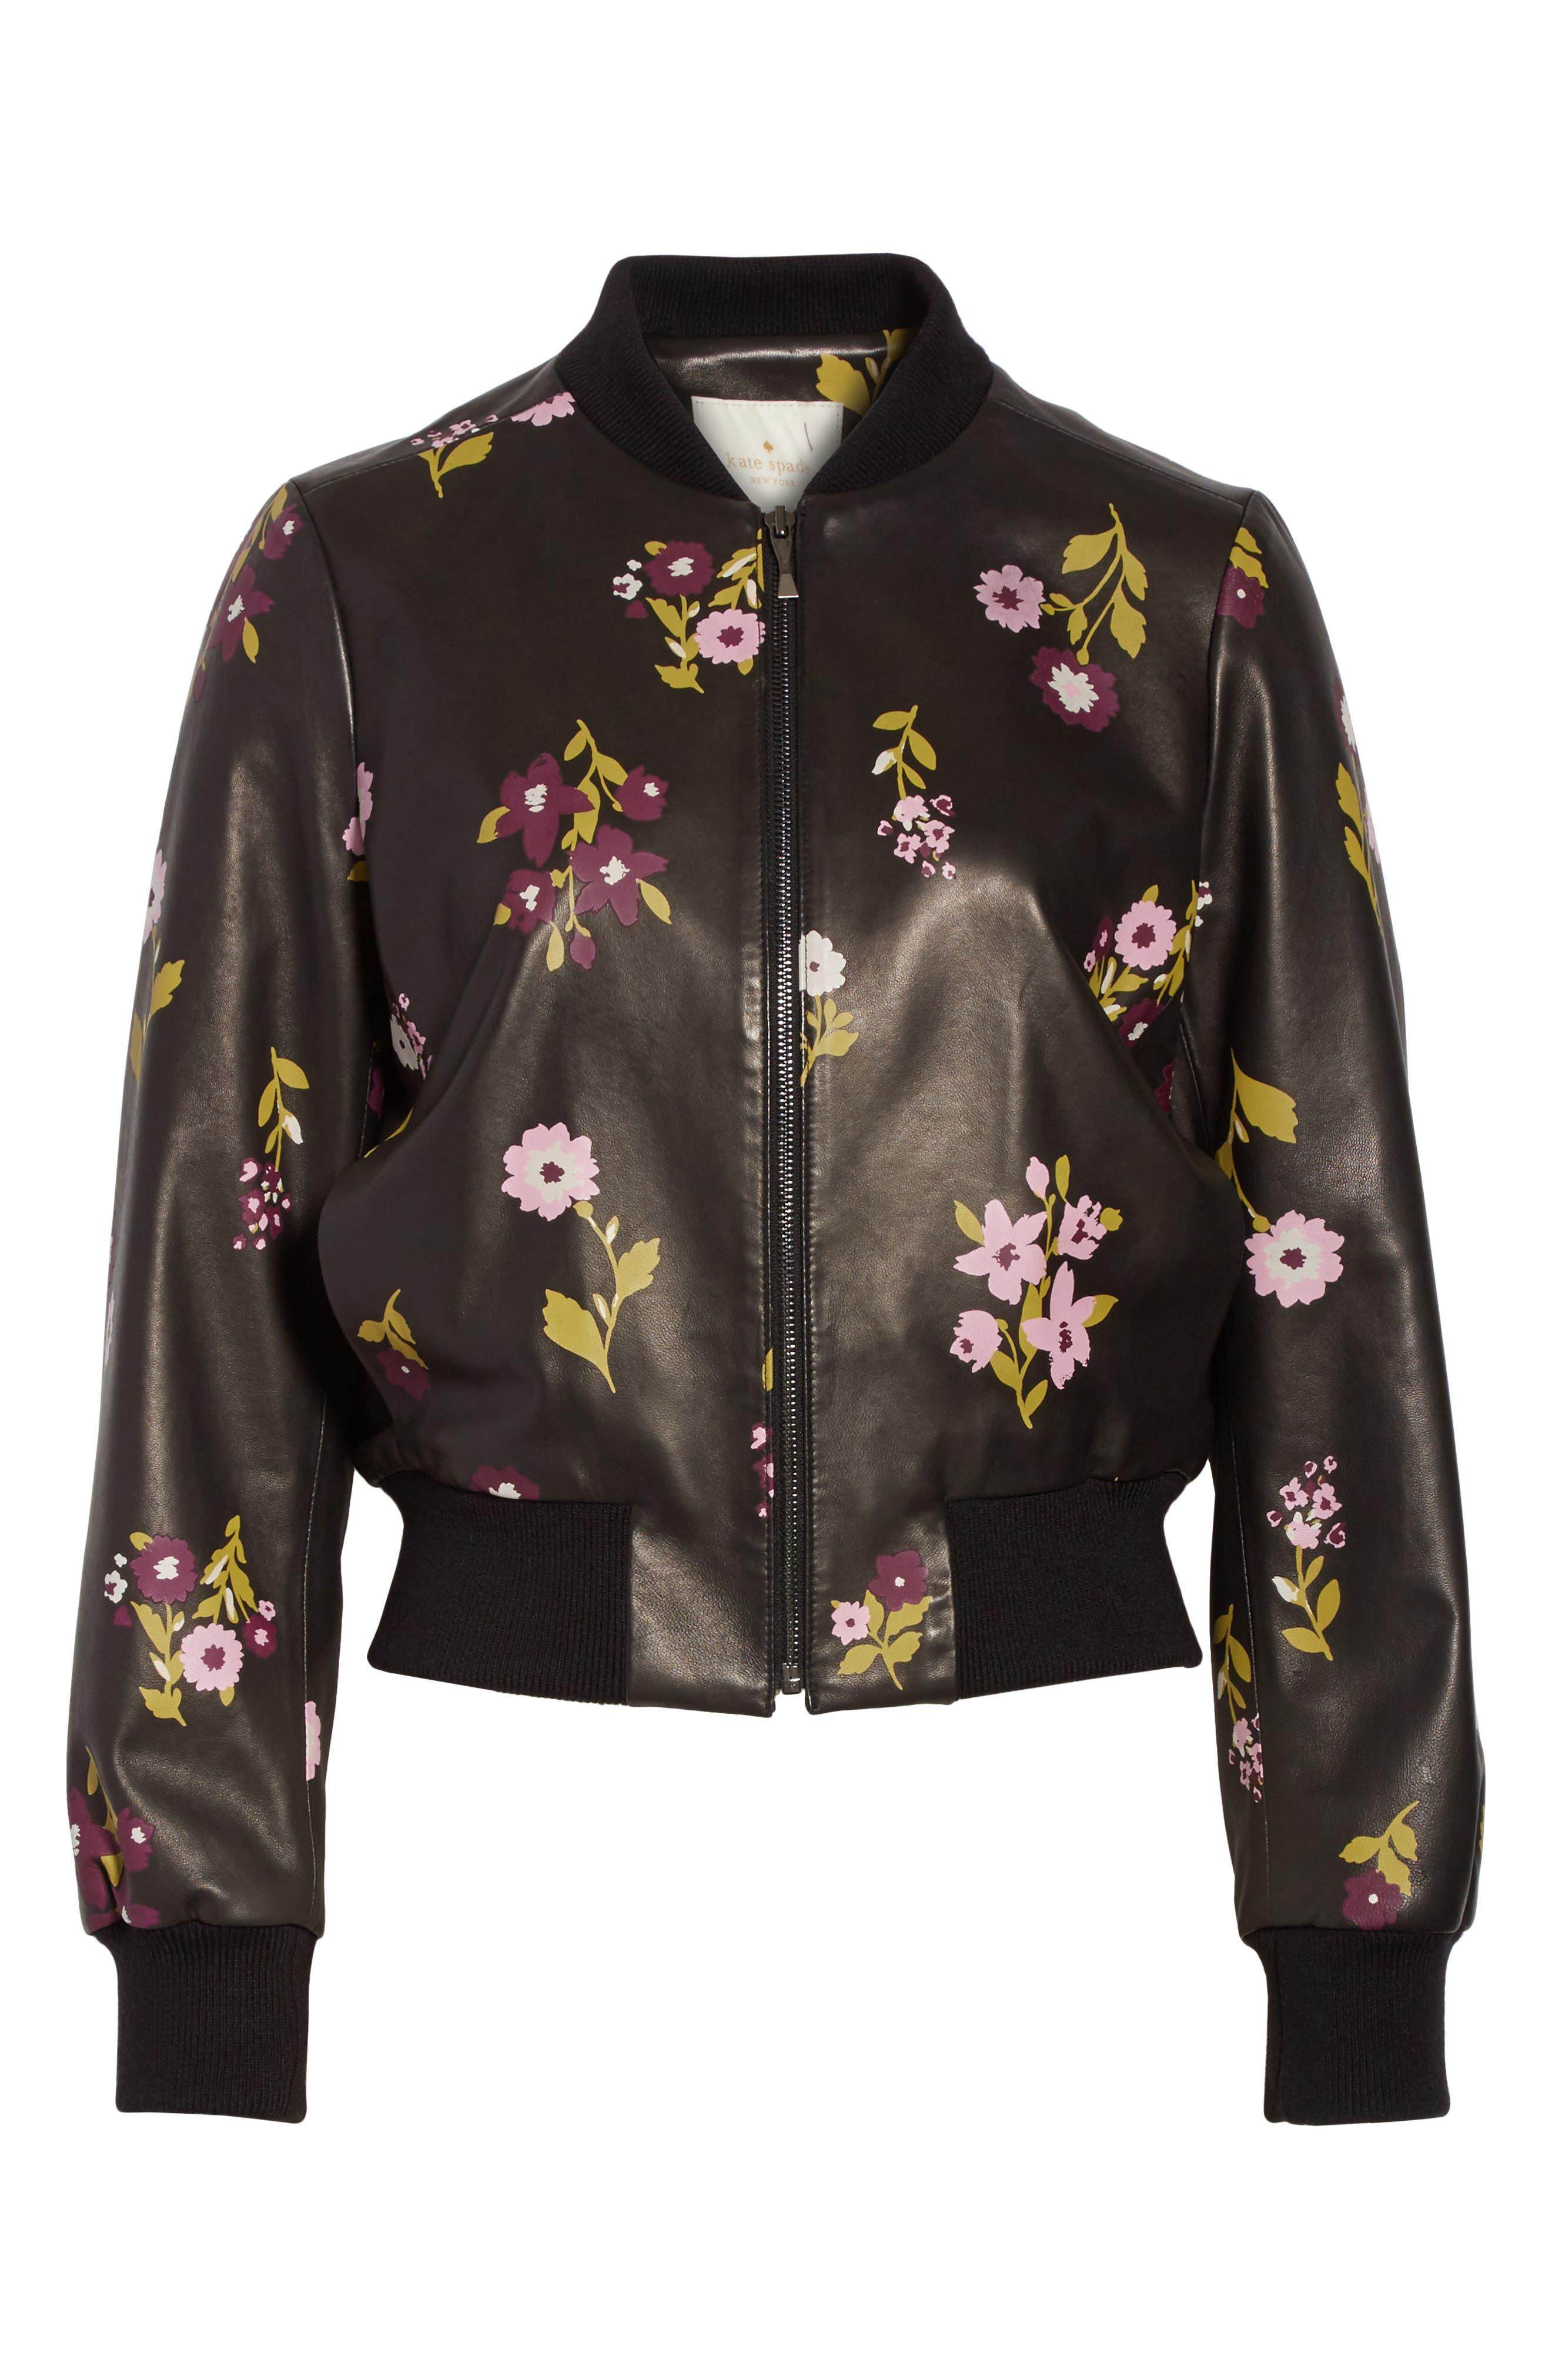 in bloom leather bomber jacket,                             Alternate thumbnail 5, color,                             006